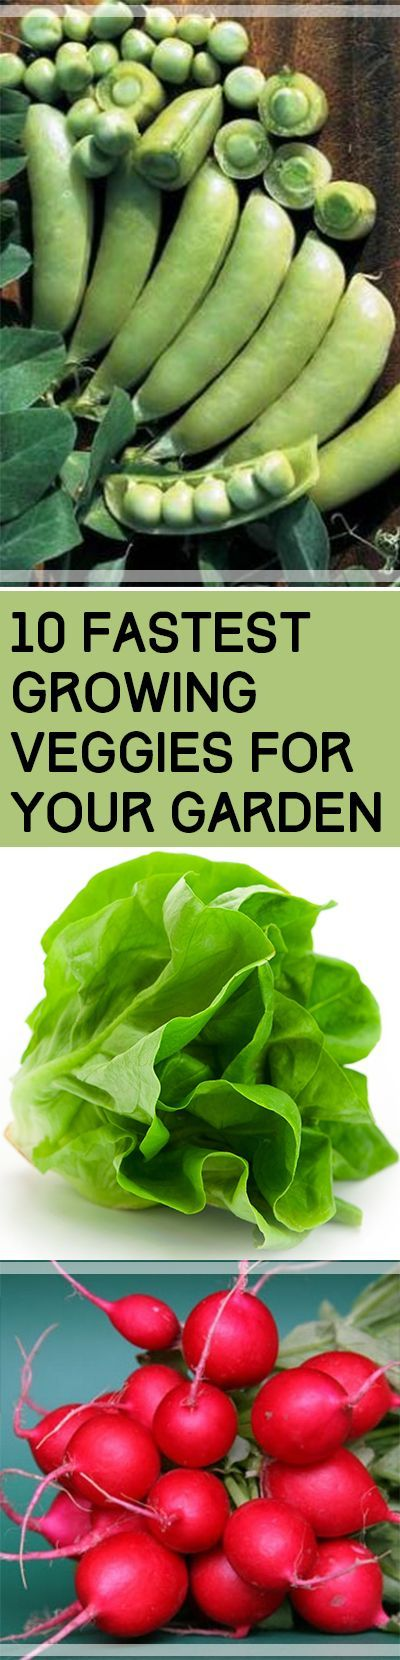 10 Fastest Growing Veggies for Your Garden.